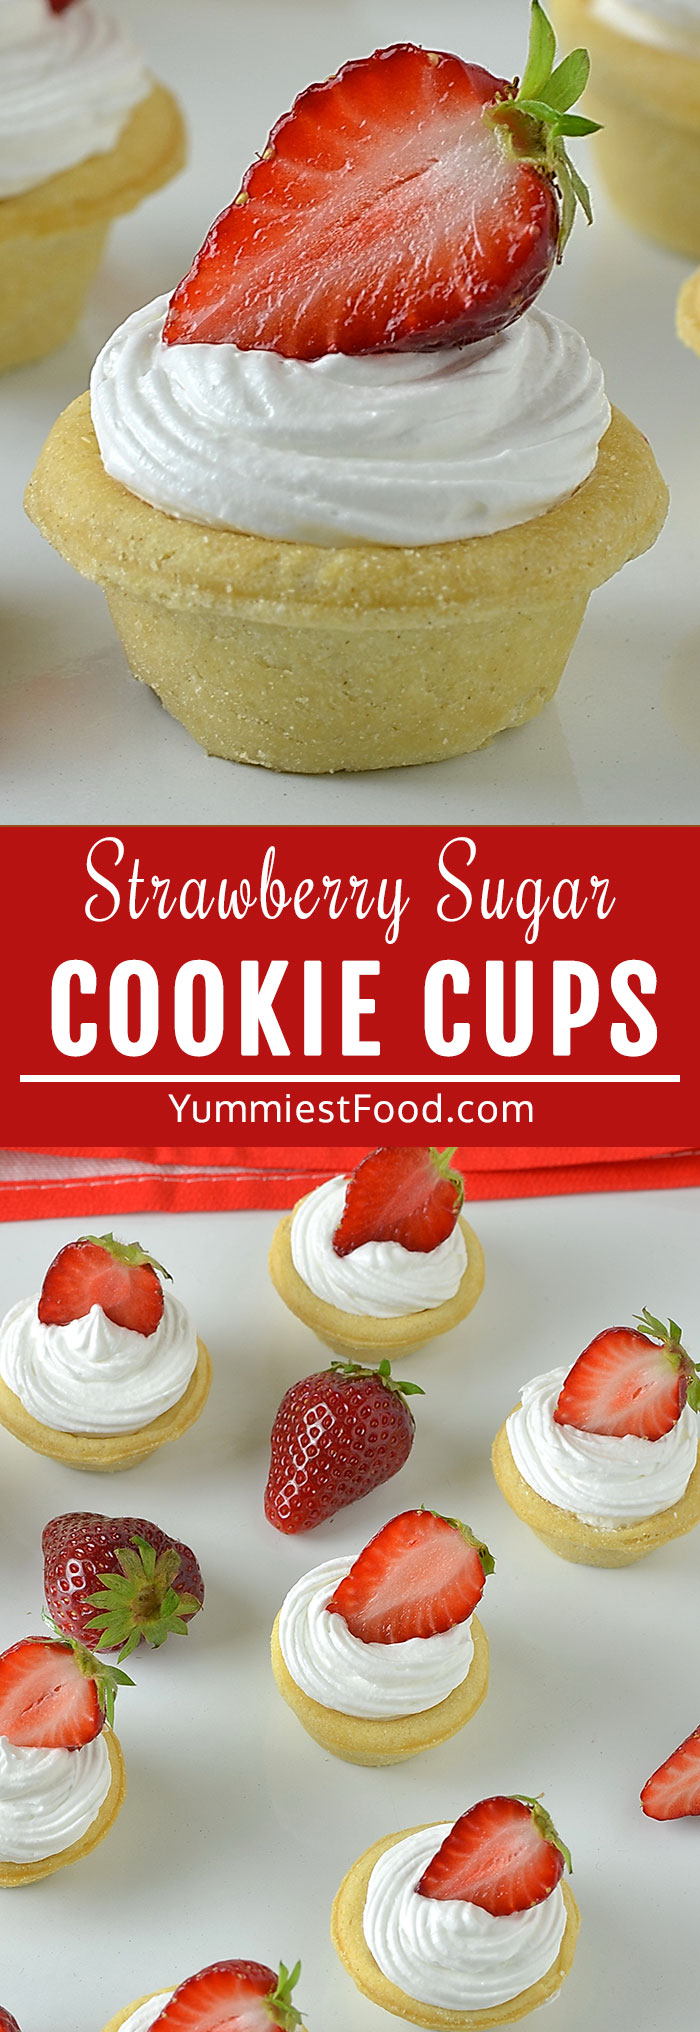 Strawberry Cheesecake Sugar Cookie Cups are an easy sugar cookie cup with creamy cheesecake filling, whipped cream and fresh strawberries! A bite-size sugar cookie cups perfect for parties and gatherings!